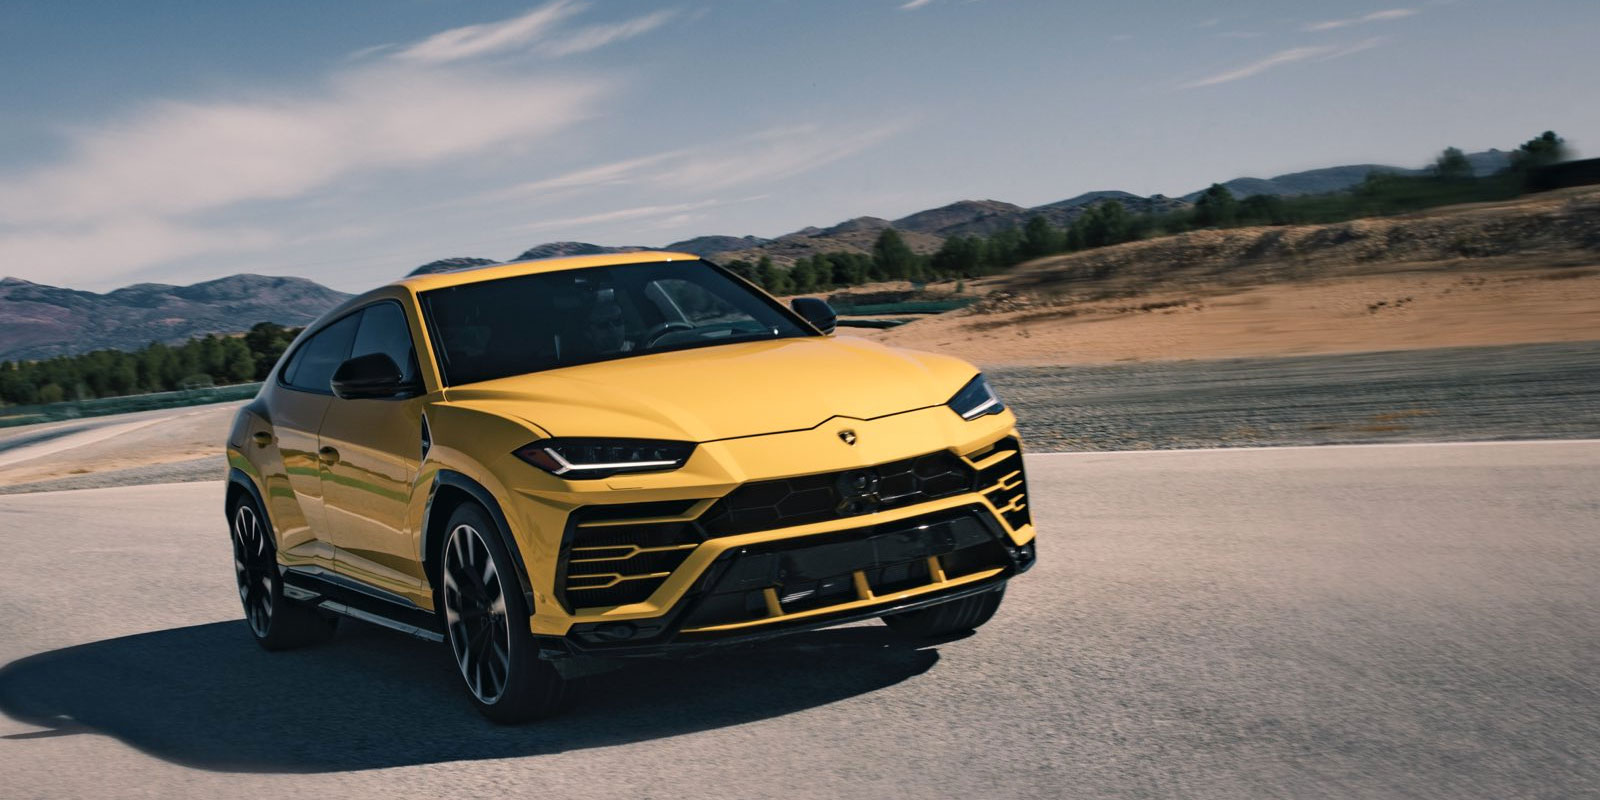 Lamborghini Urus - The World's First Super Sport Utility Vehicle image 3